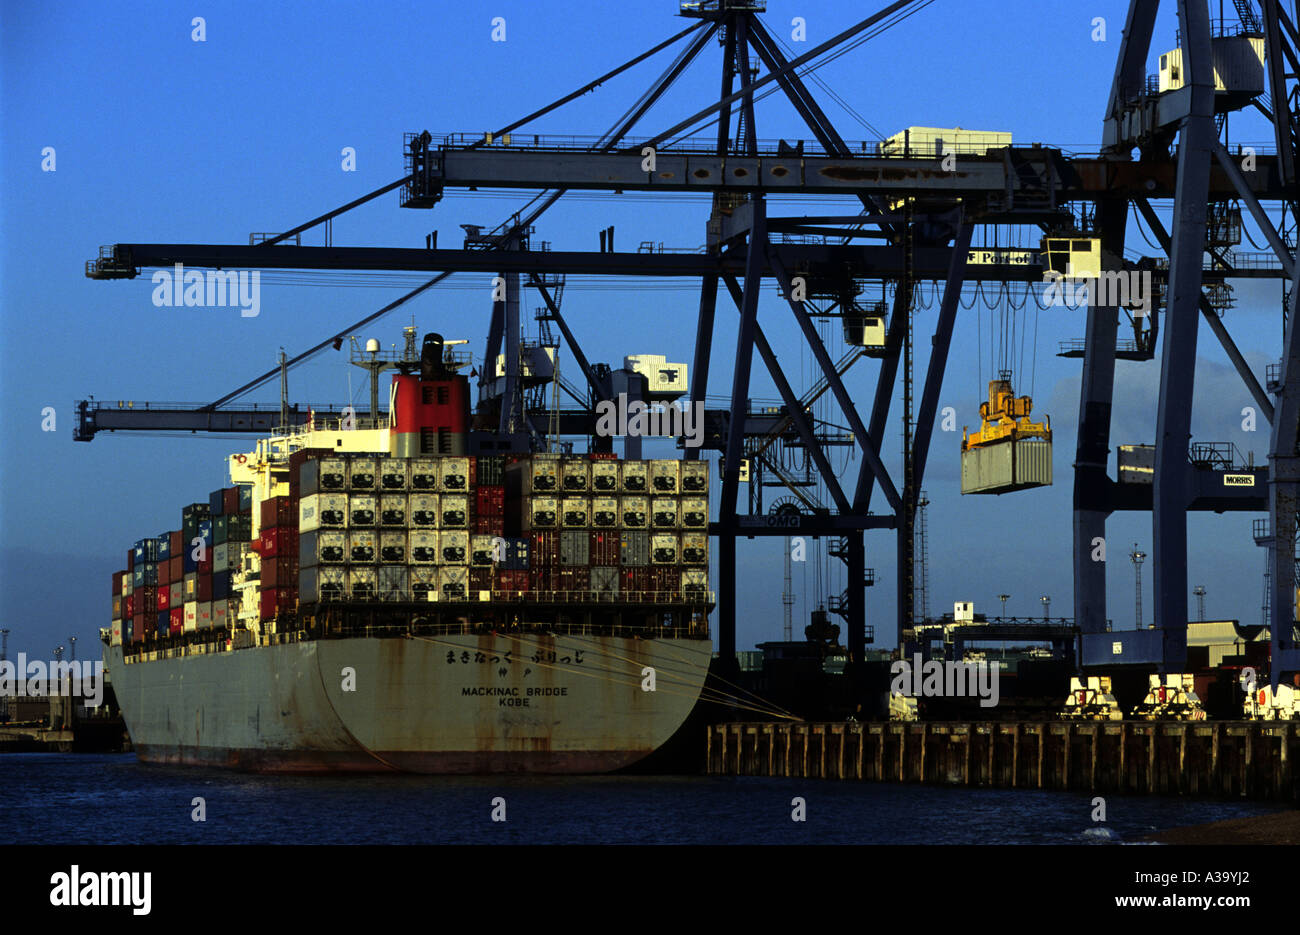 Landguard quay at the Port of Felixstowe in Suffolk, Britain's largest container port. - Stock Image